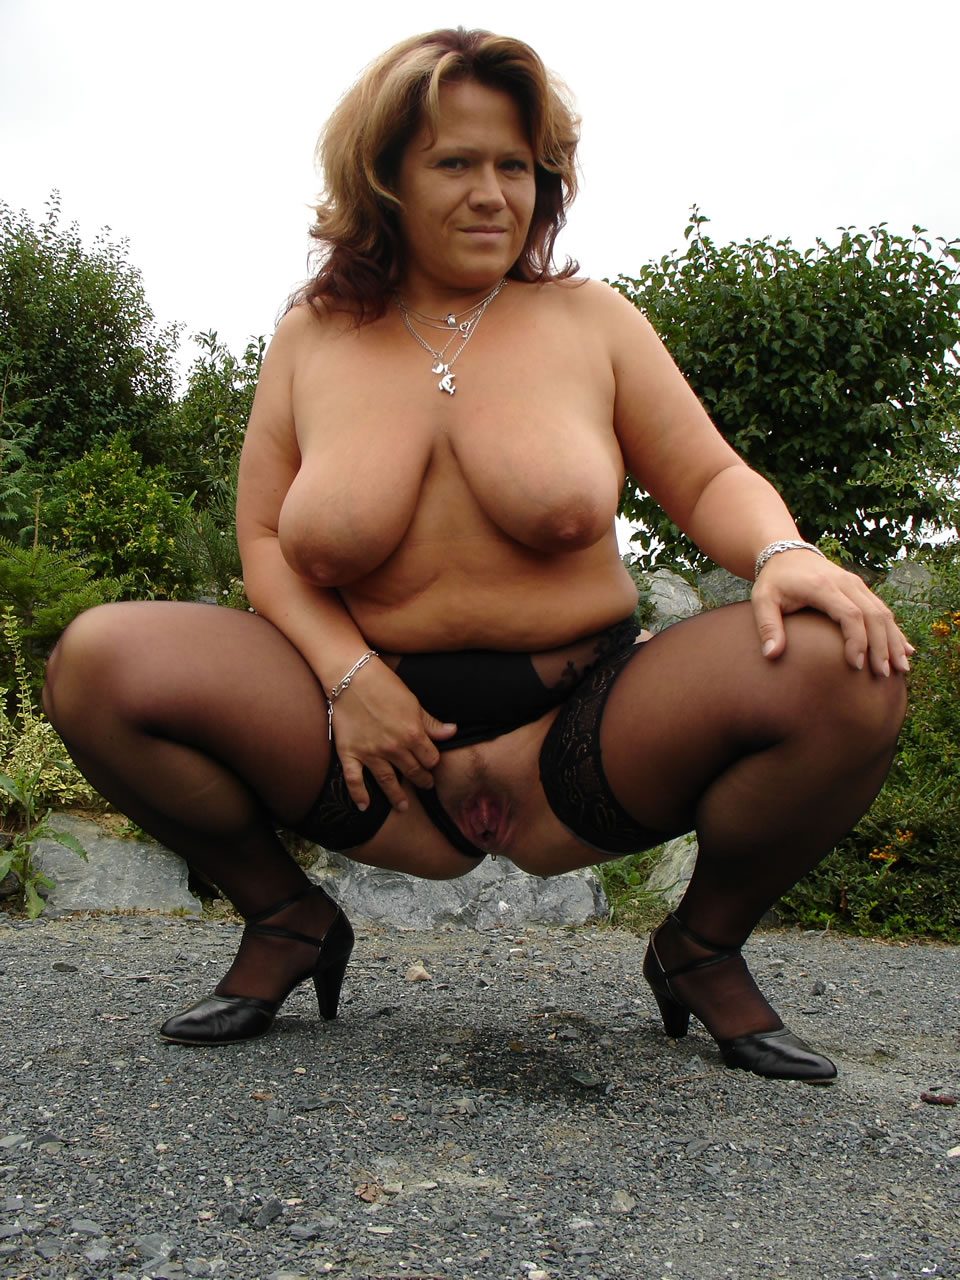 Busty strapon lady domination mistress galleries